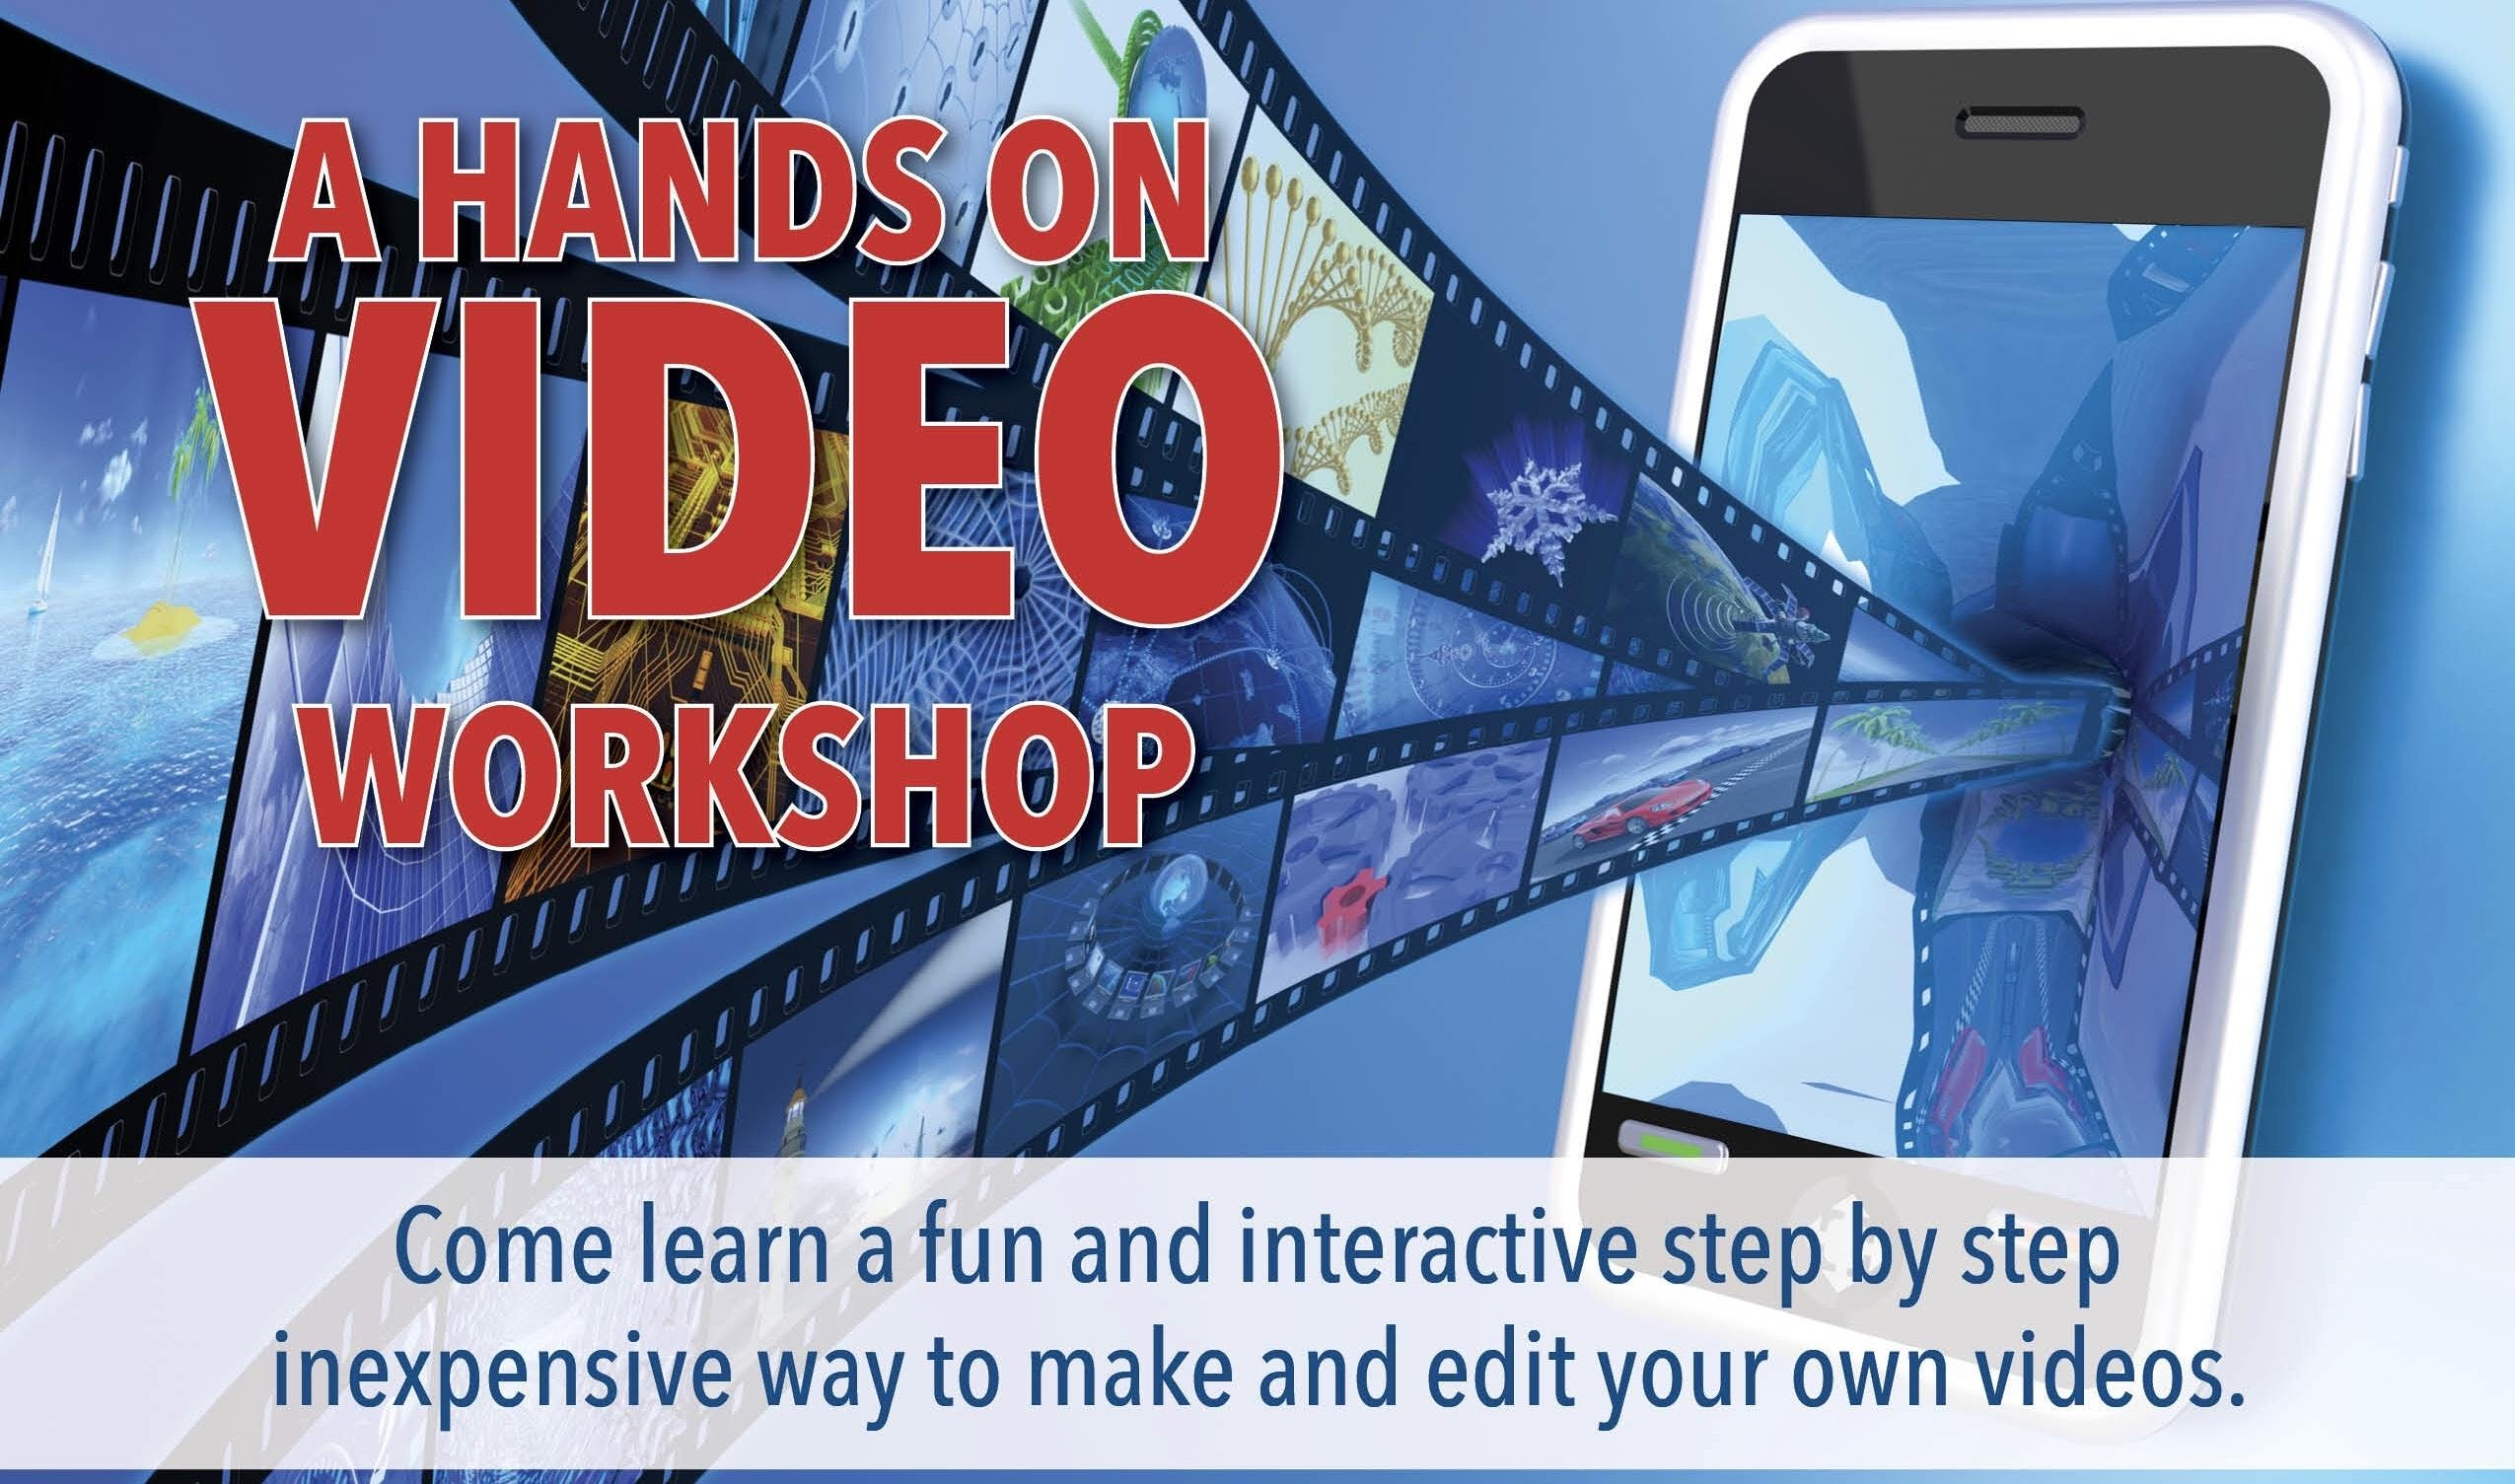 Another Not-a-Video and Branding Class. We're Having a Workshop!